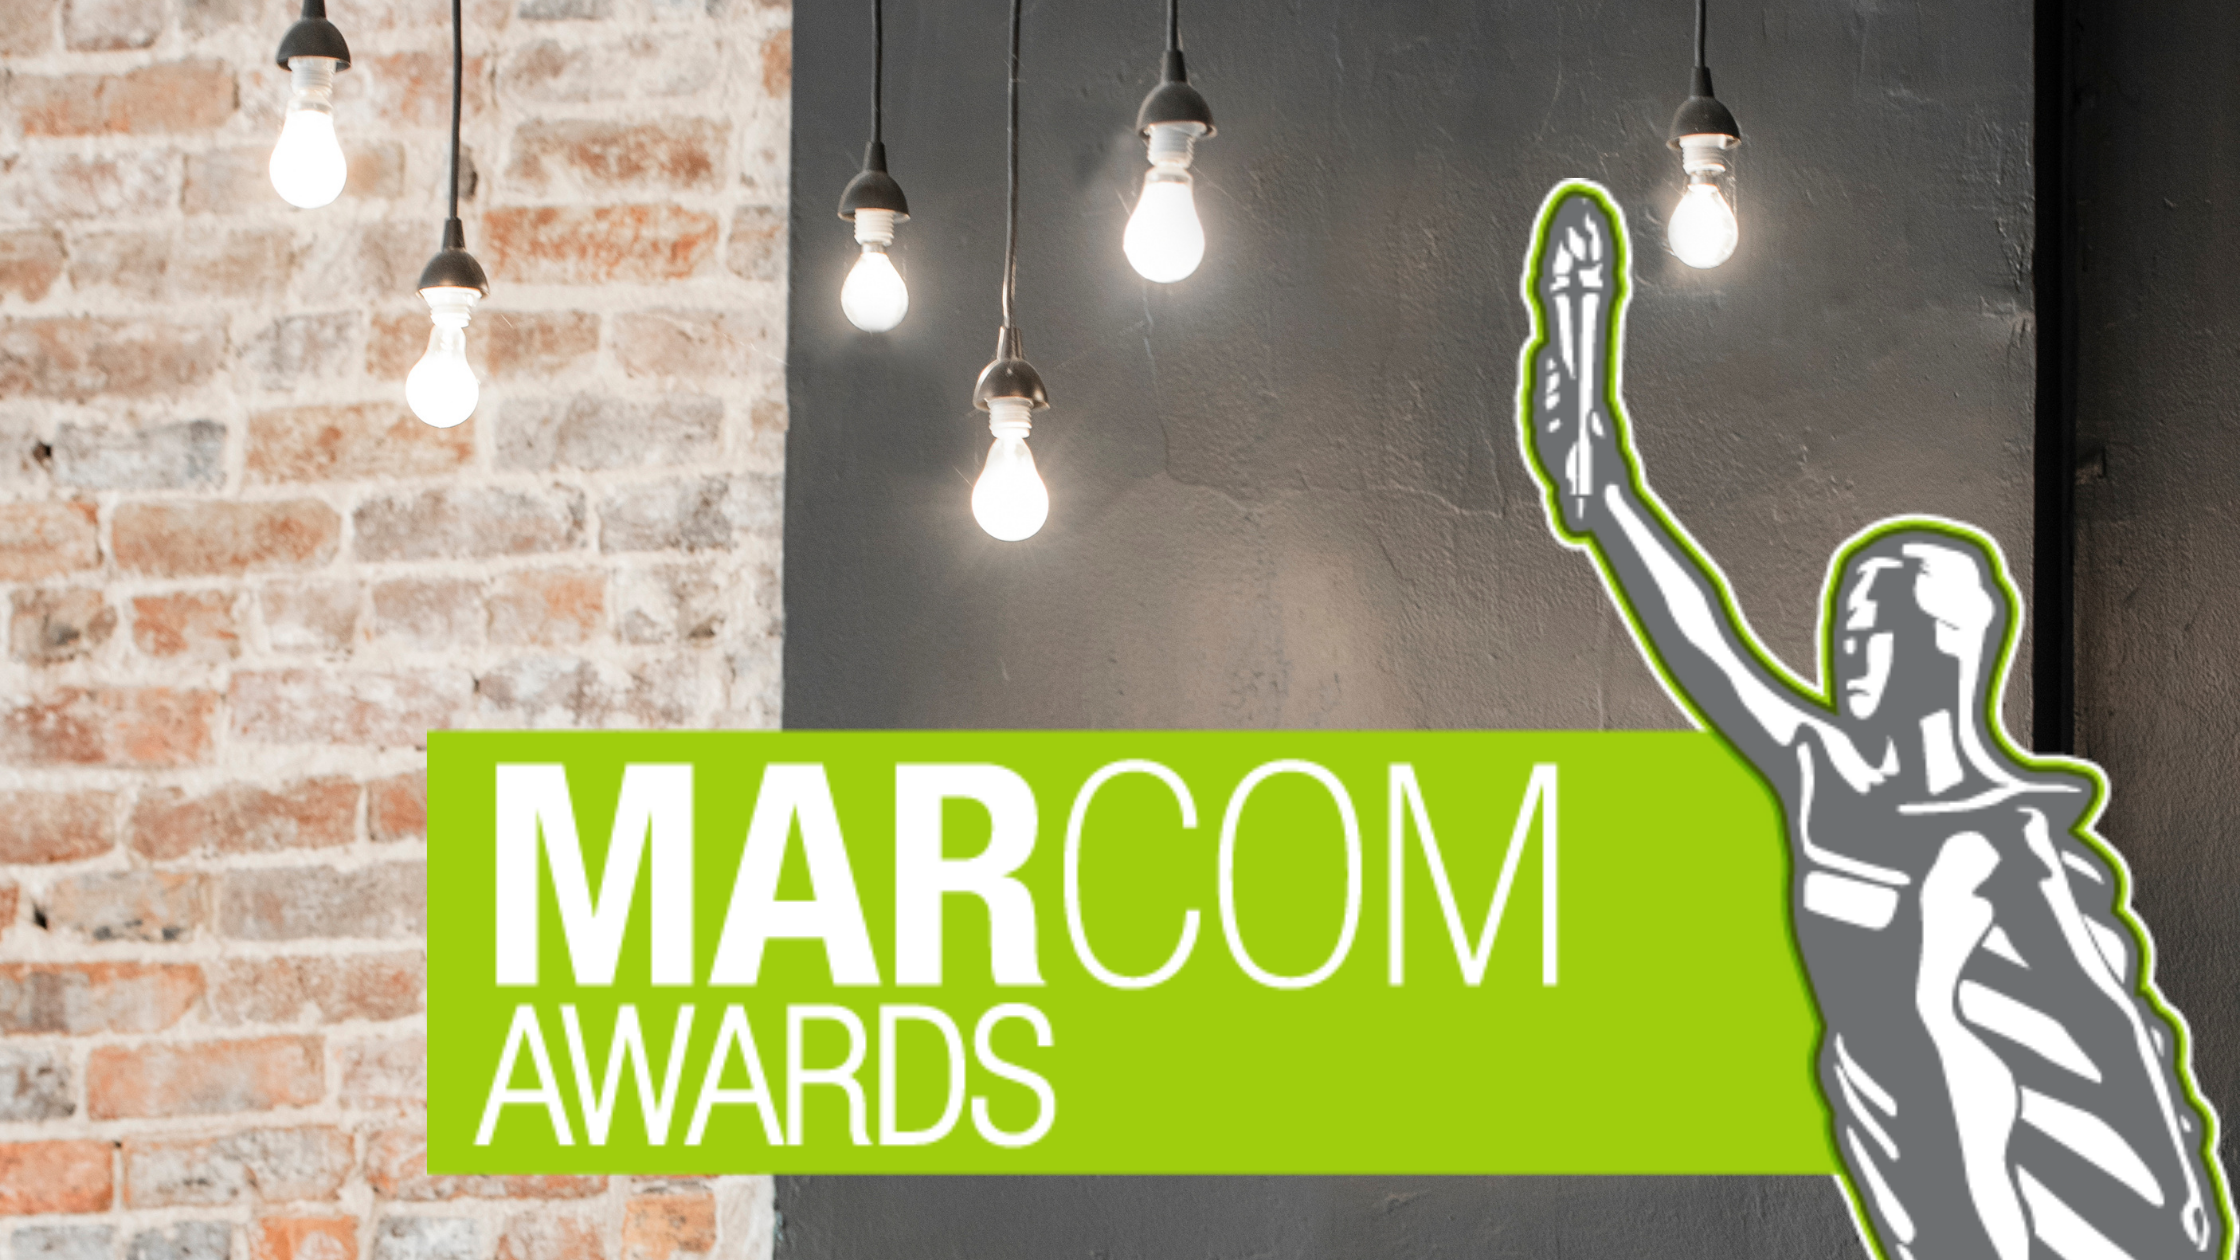 Award Winning Knoxville Marketing Agency Wins Marcom Awards